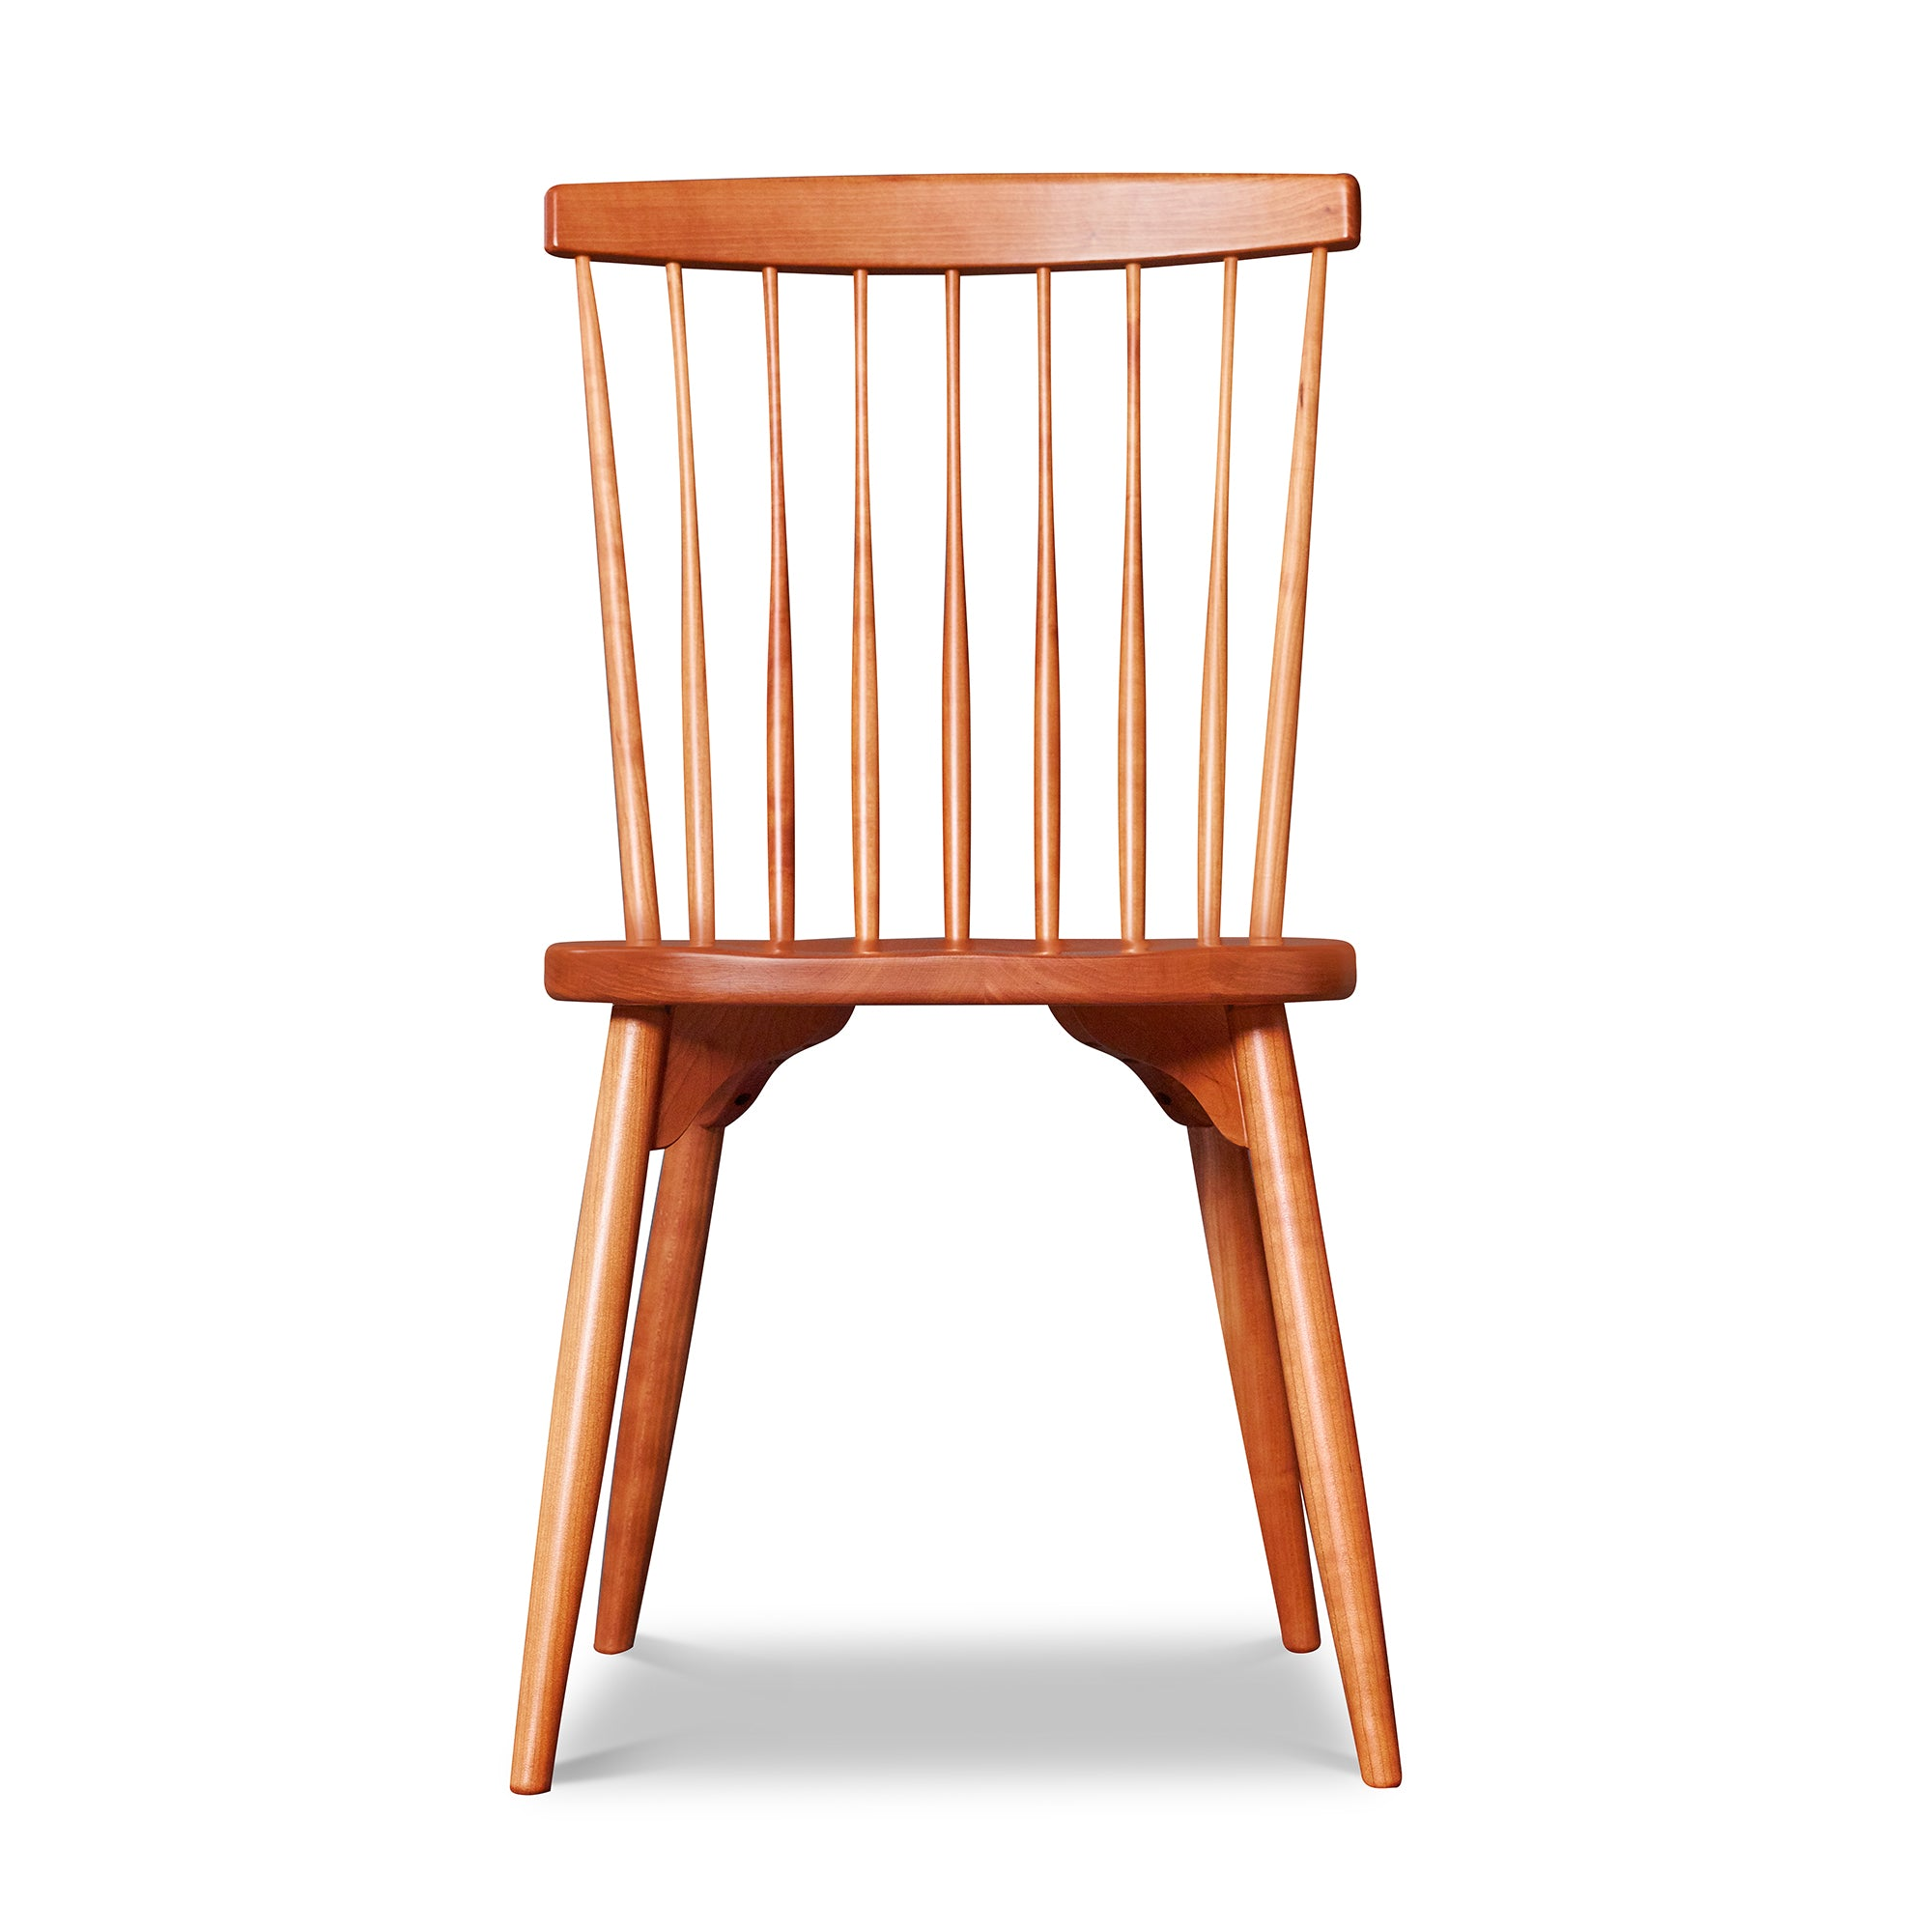 Classic spindle back chair with round tapered legs in solid cherry wood